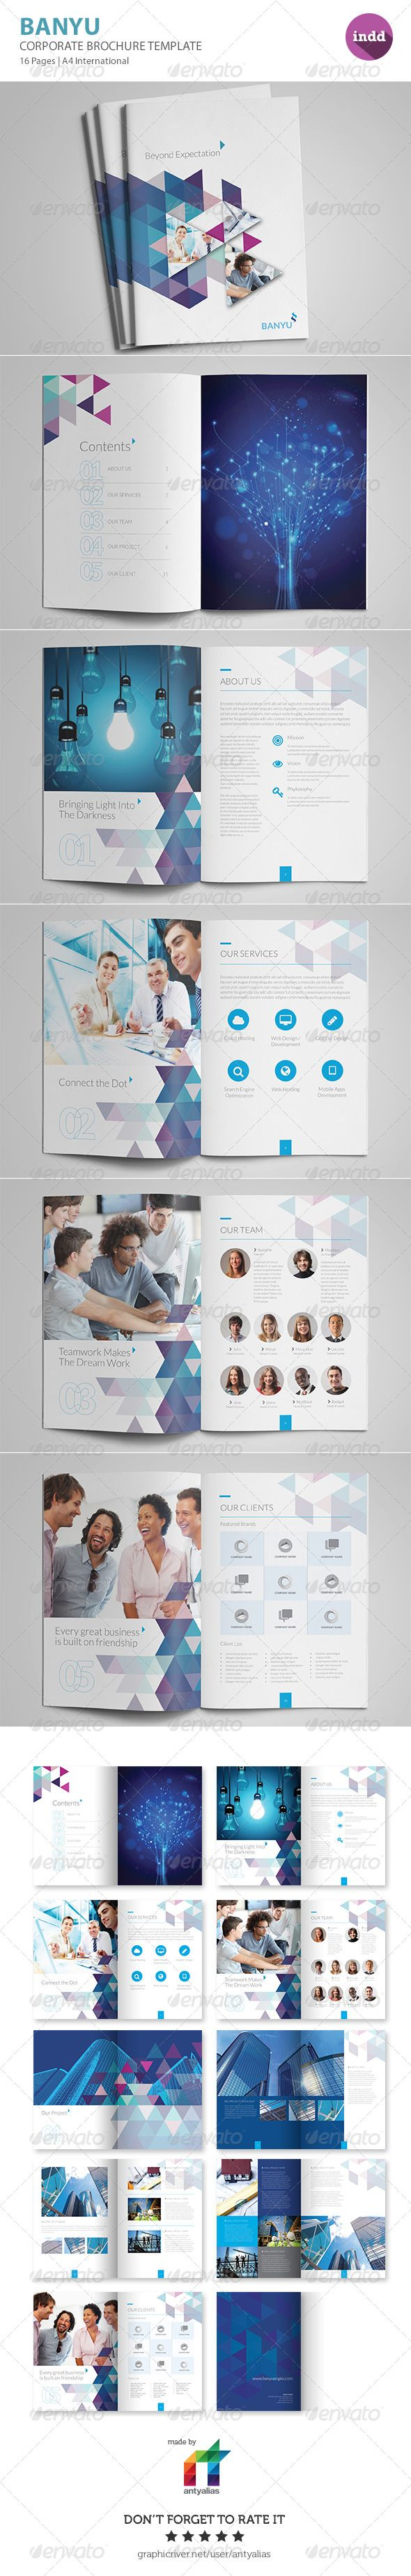 BANYU - Professional Corporate Brochure Templates - Corporate Brochures